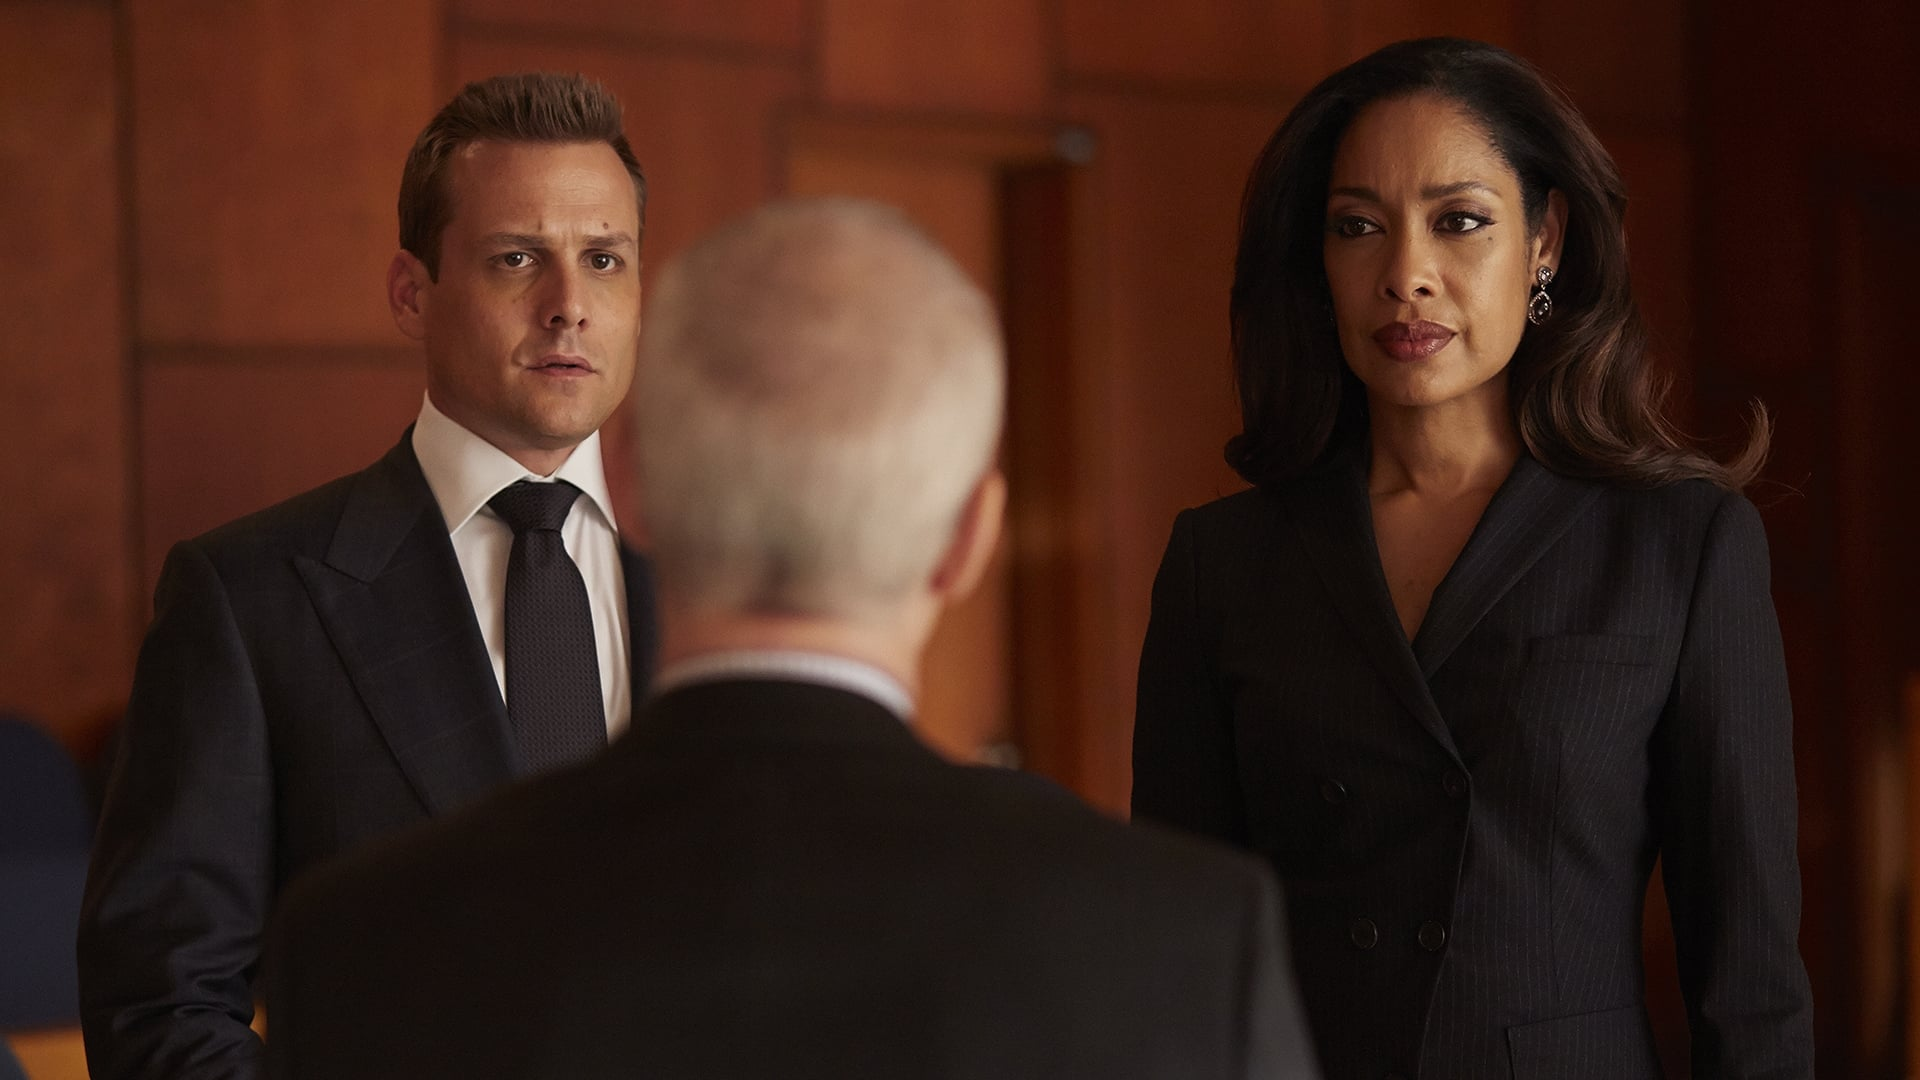 Suits Season 4 Episode 11 Watch Online Hd | Rooter Tech